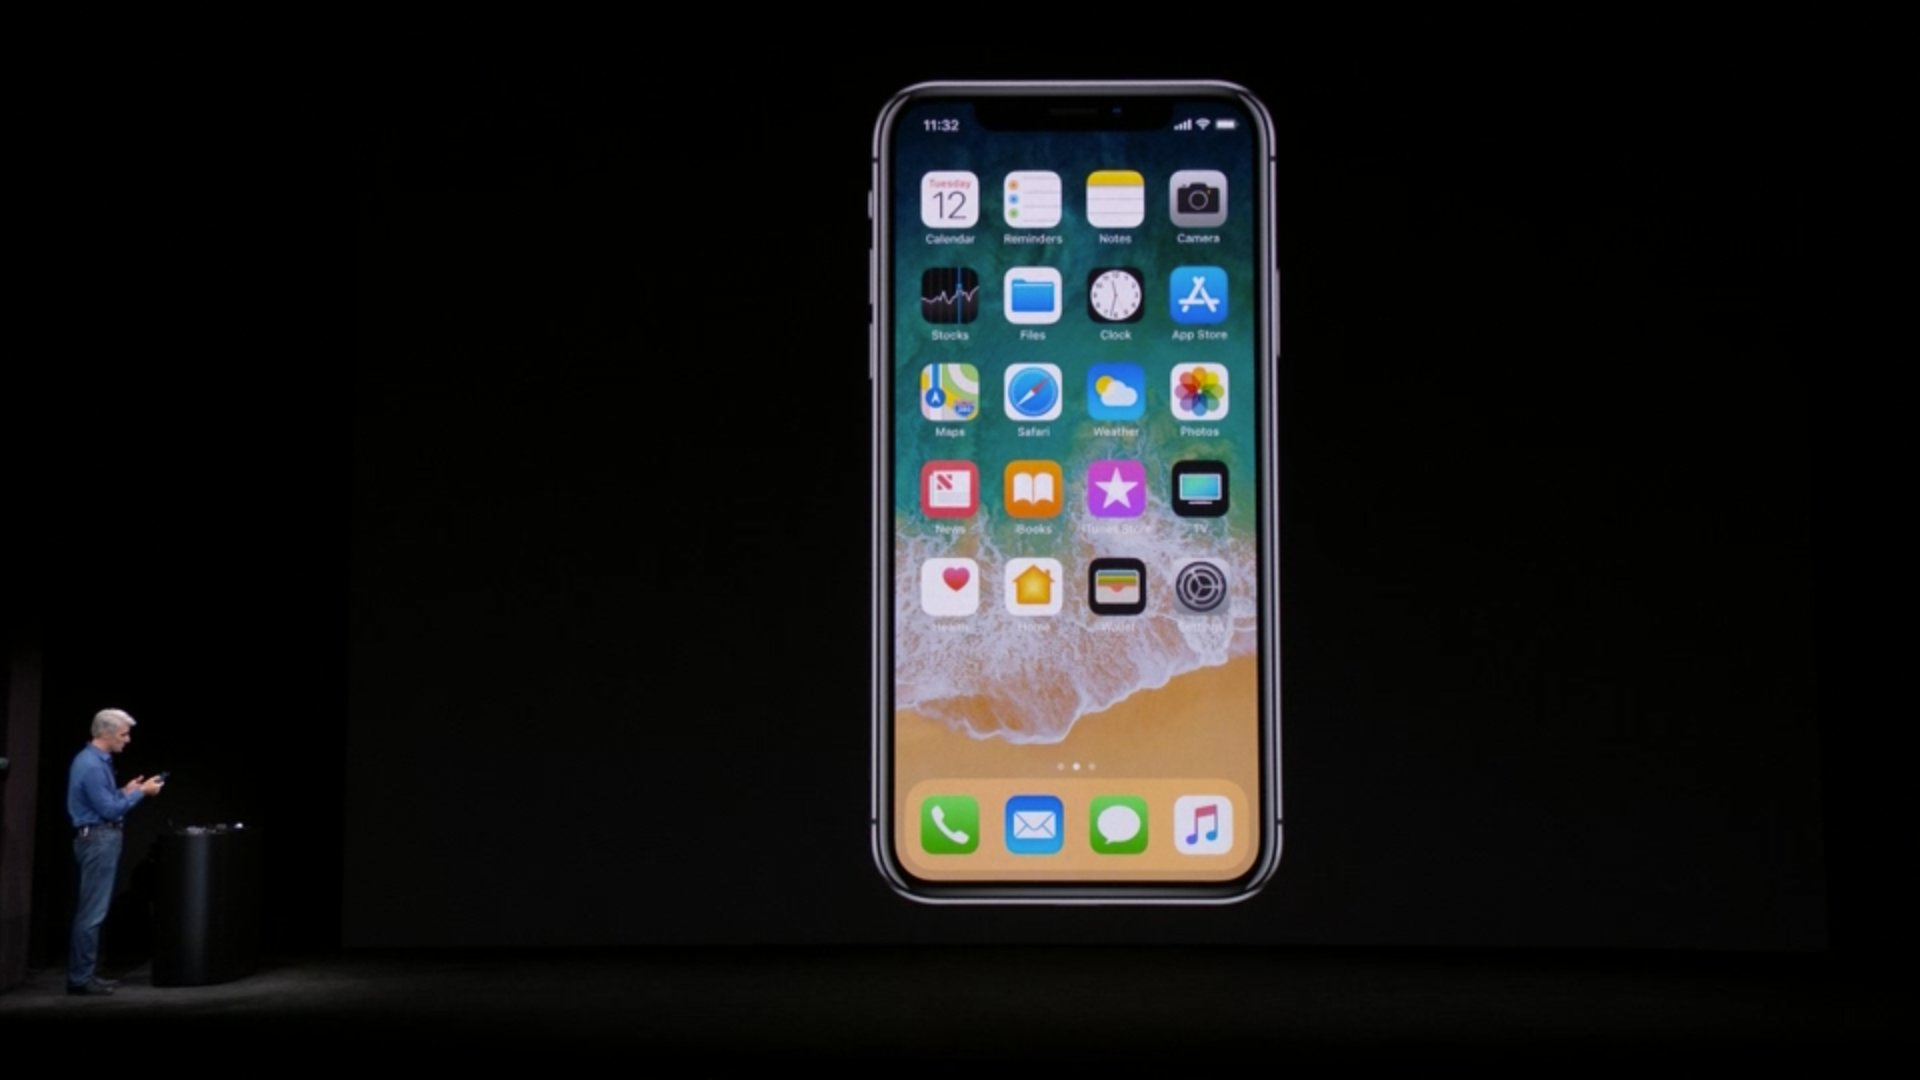 A look at the home page with the full front screen on the iPhone X. #AppleEvent https://t.co/fmNHROPzRB